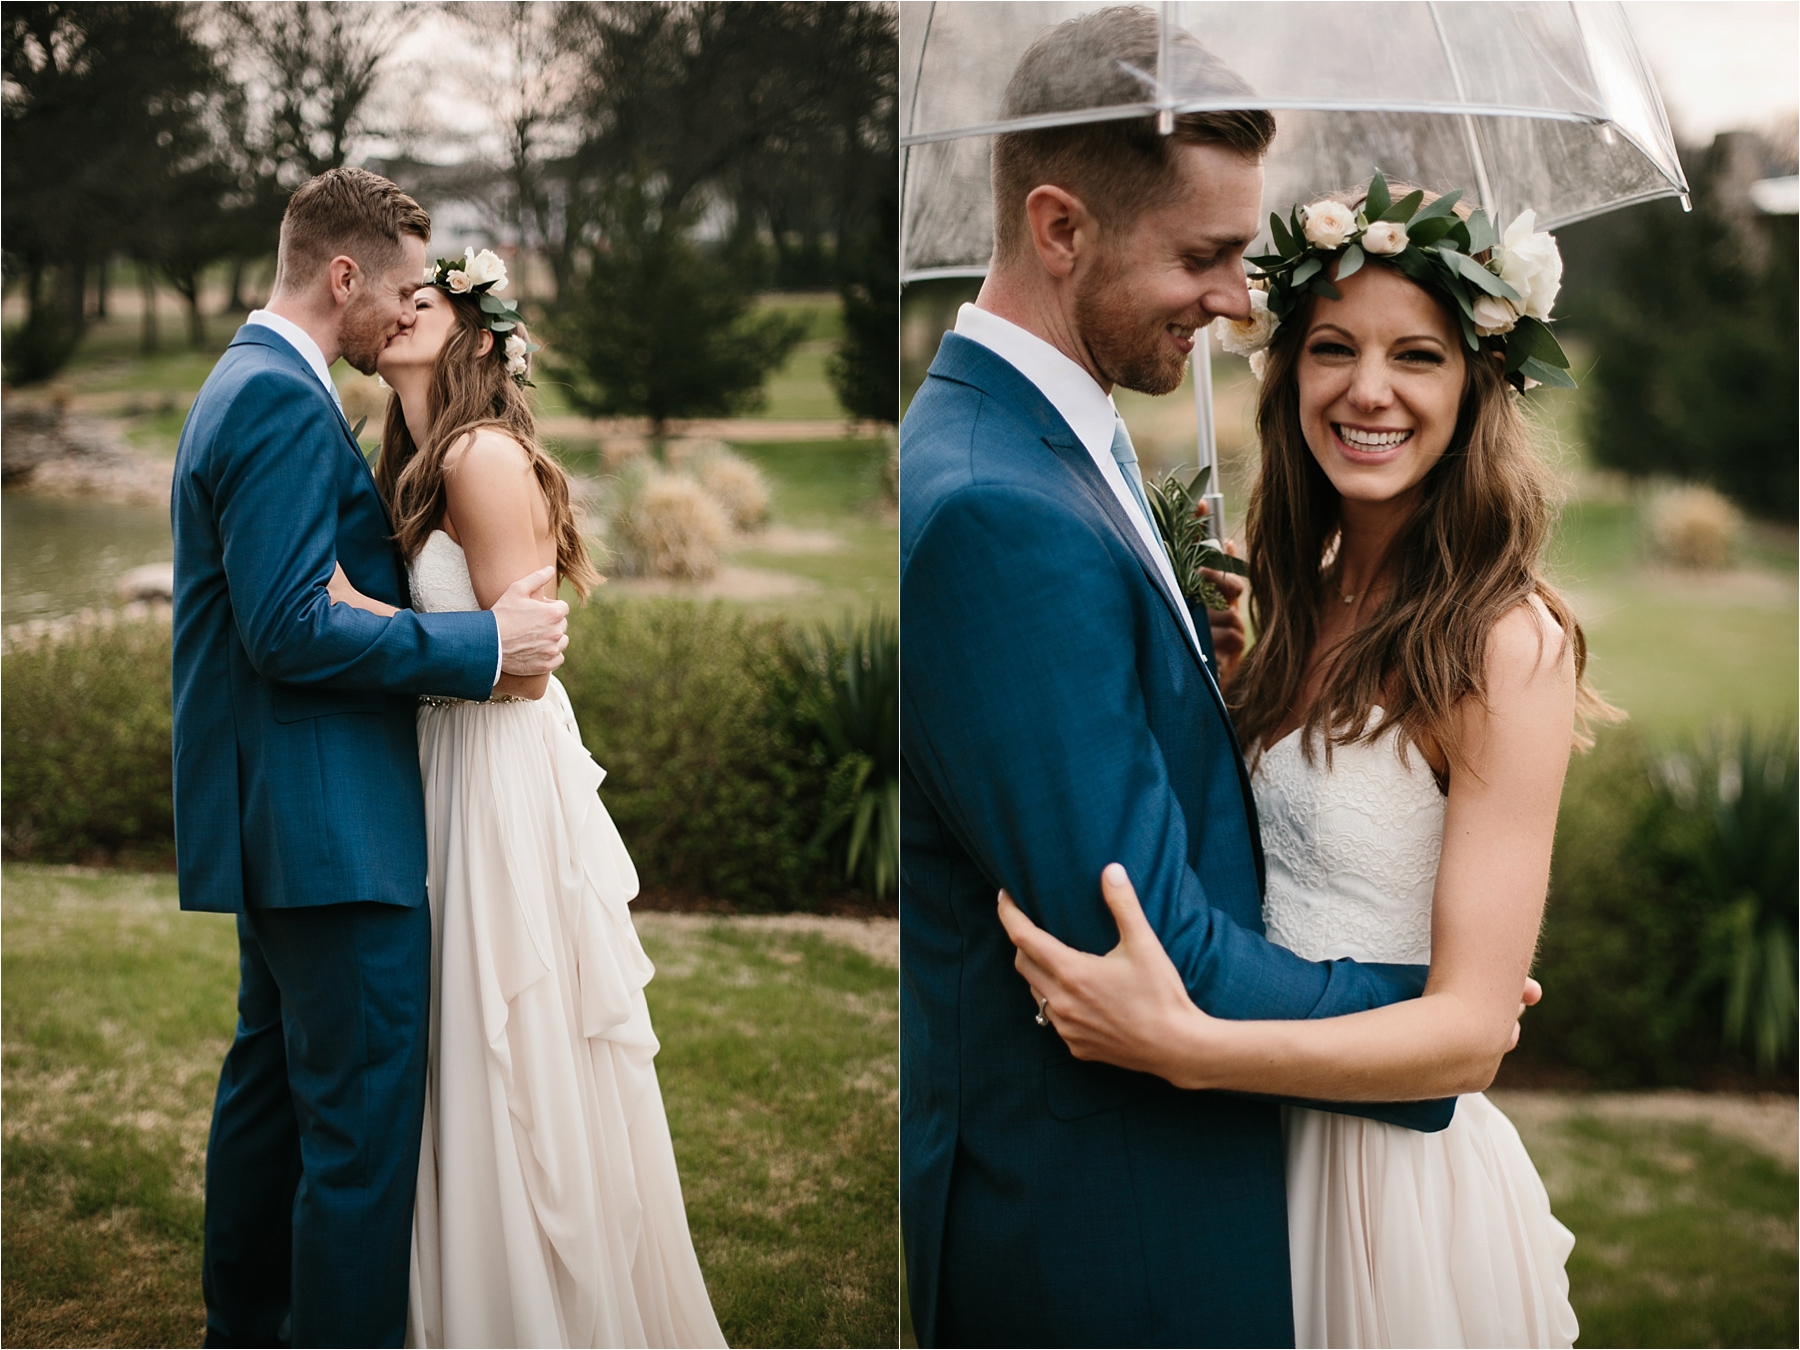 Lauren + Matt __ an intimate, emotional, blush pink, navy blue, and greenery toned wedding accents at the Brooks at Weatherford by North Texas Wedding Photographer Rachel Meagan Photography145